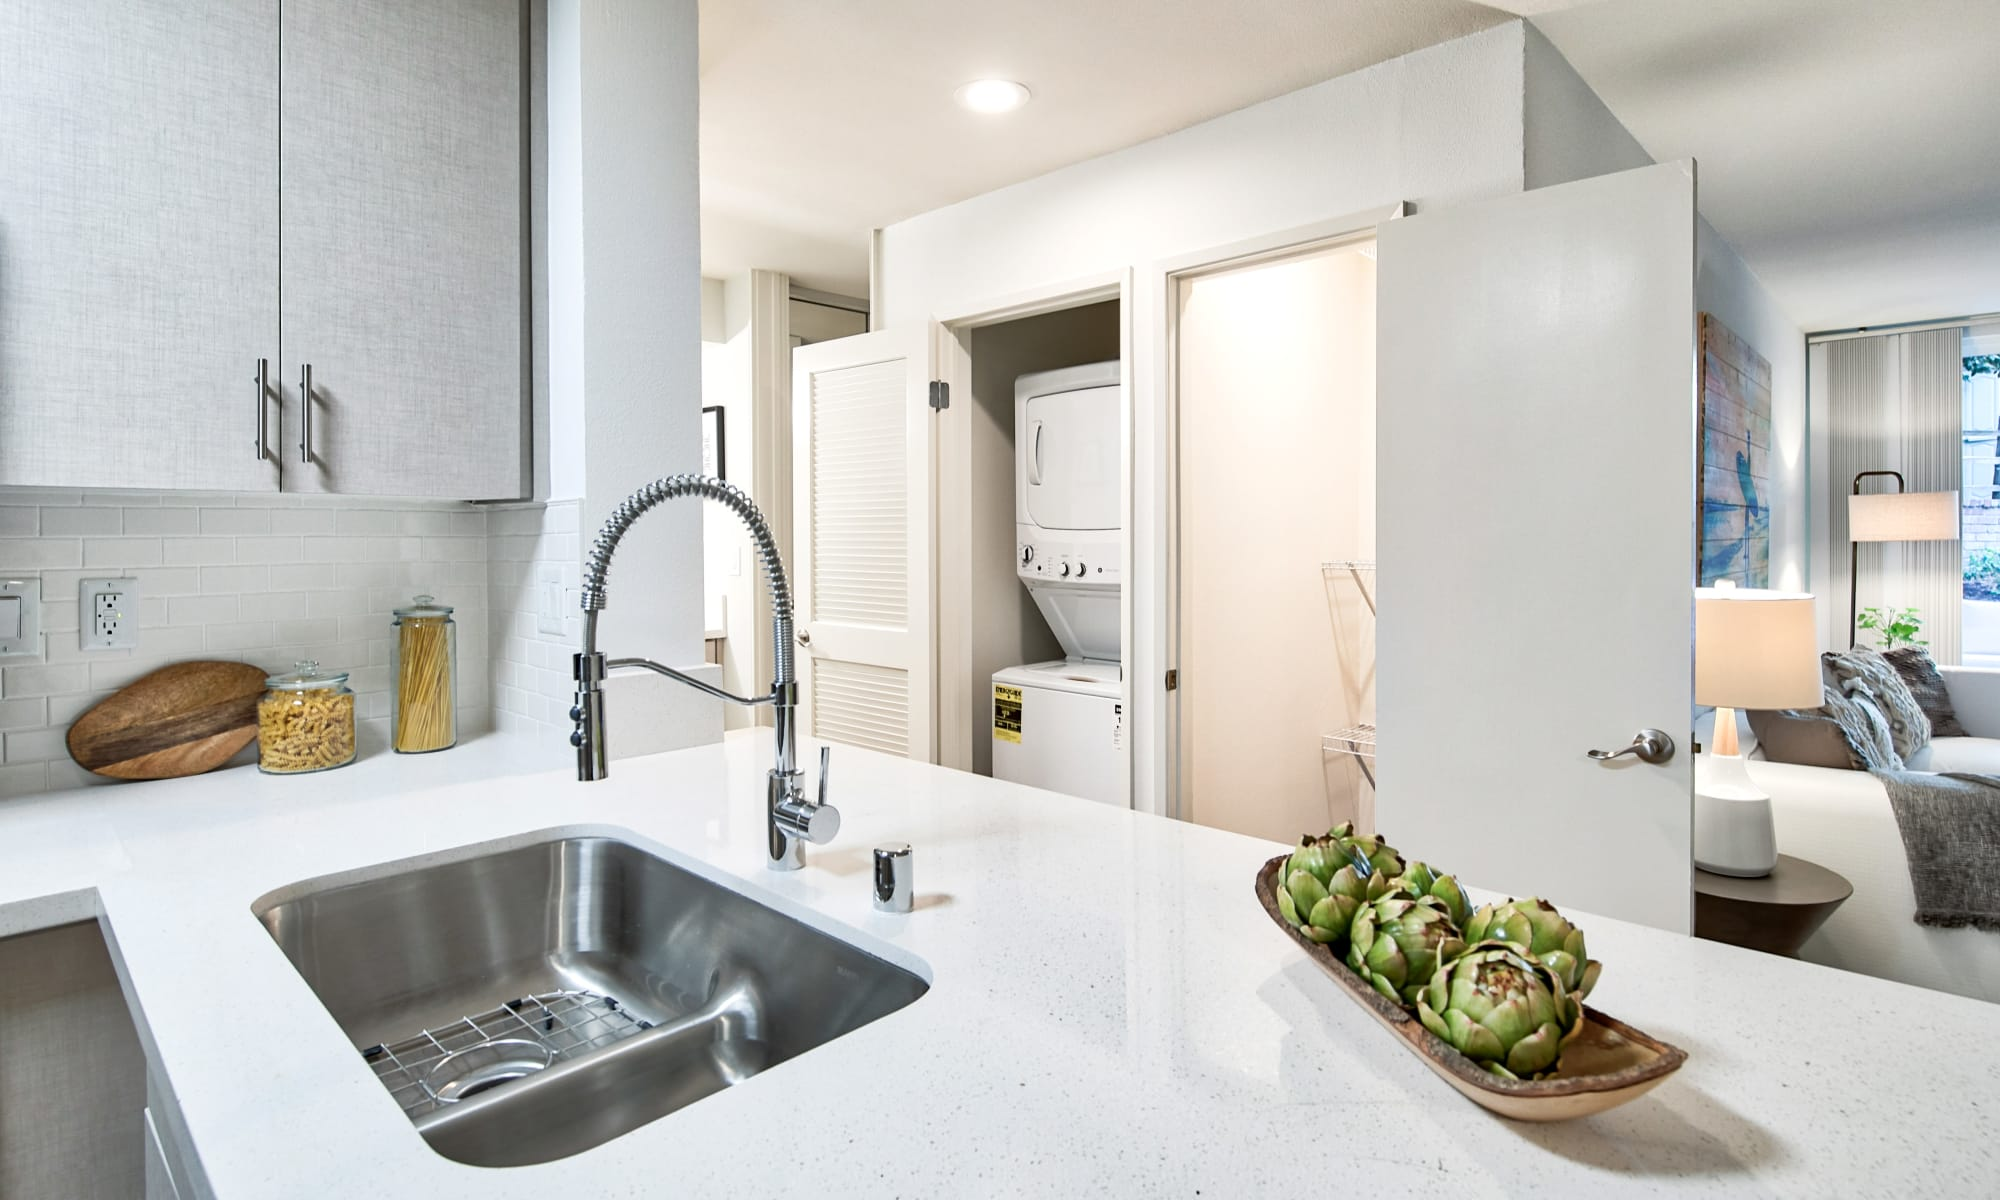 Model apartment's kitchen with stainless-steel appliances at The Meadows in Culver City, California